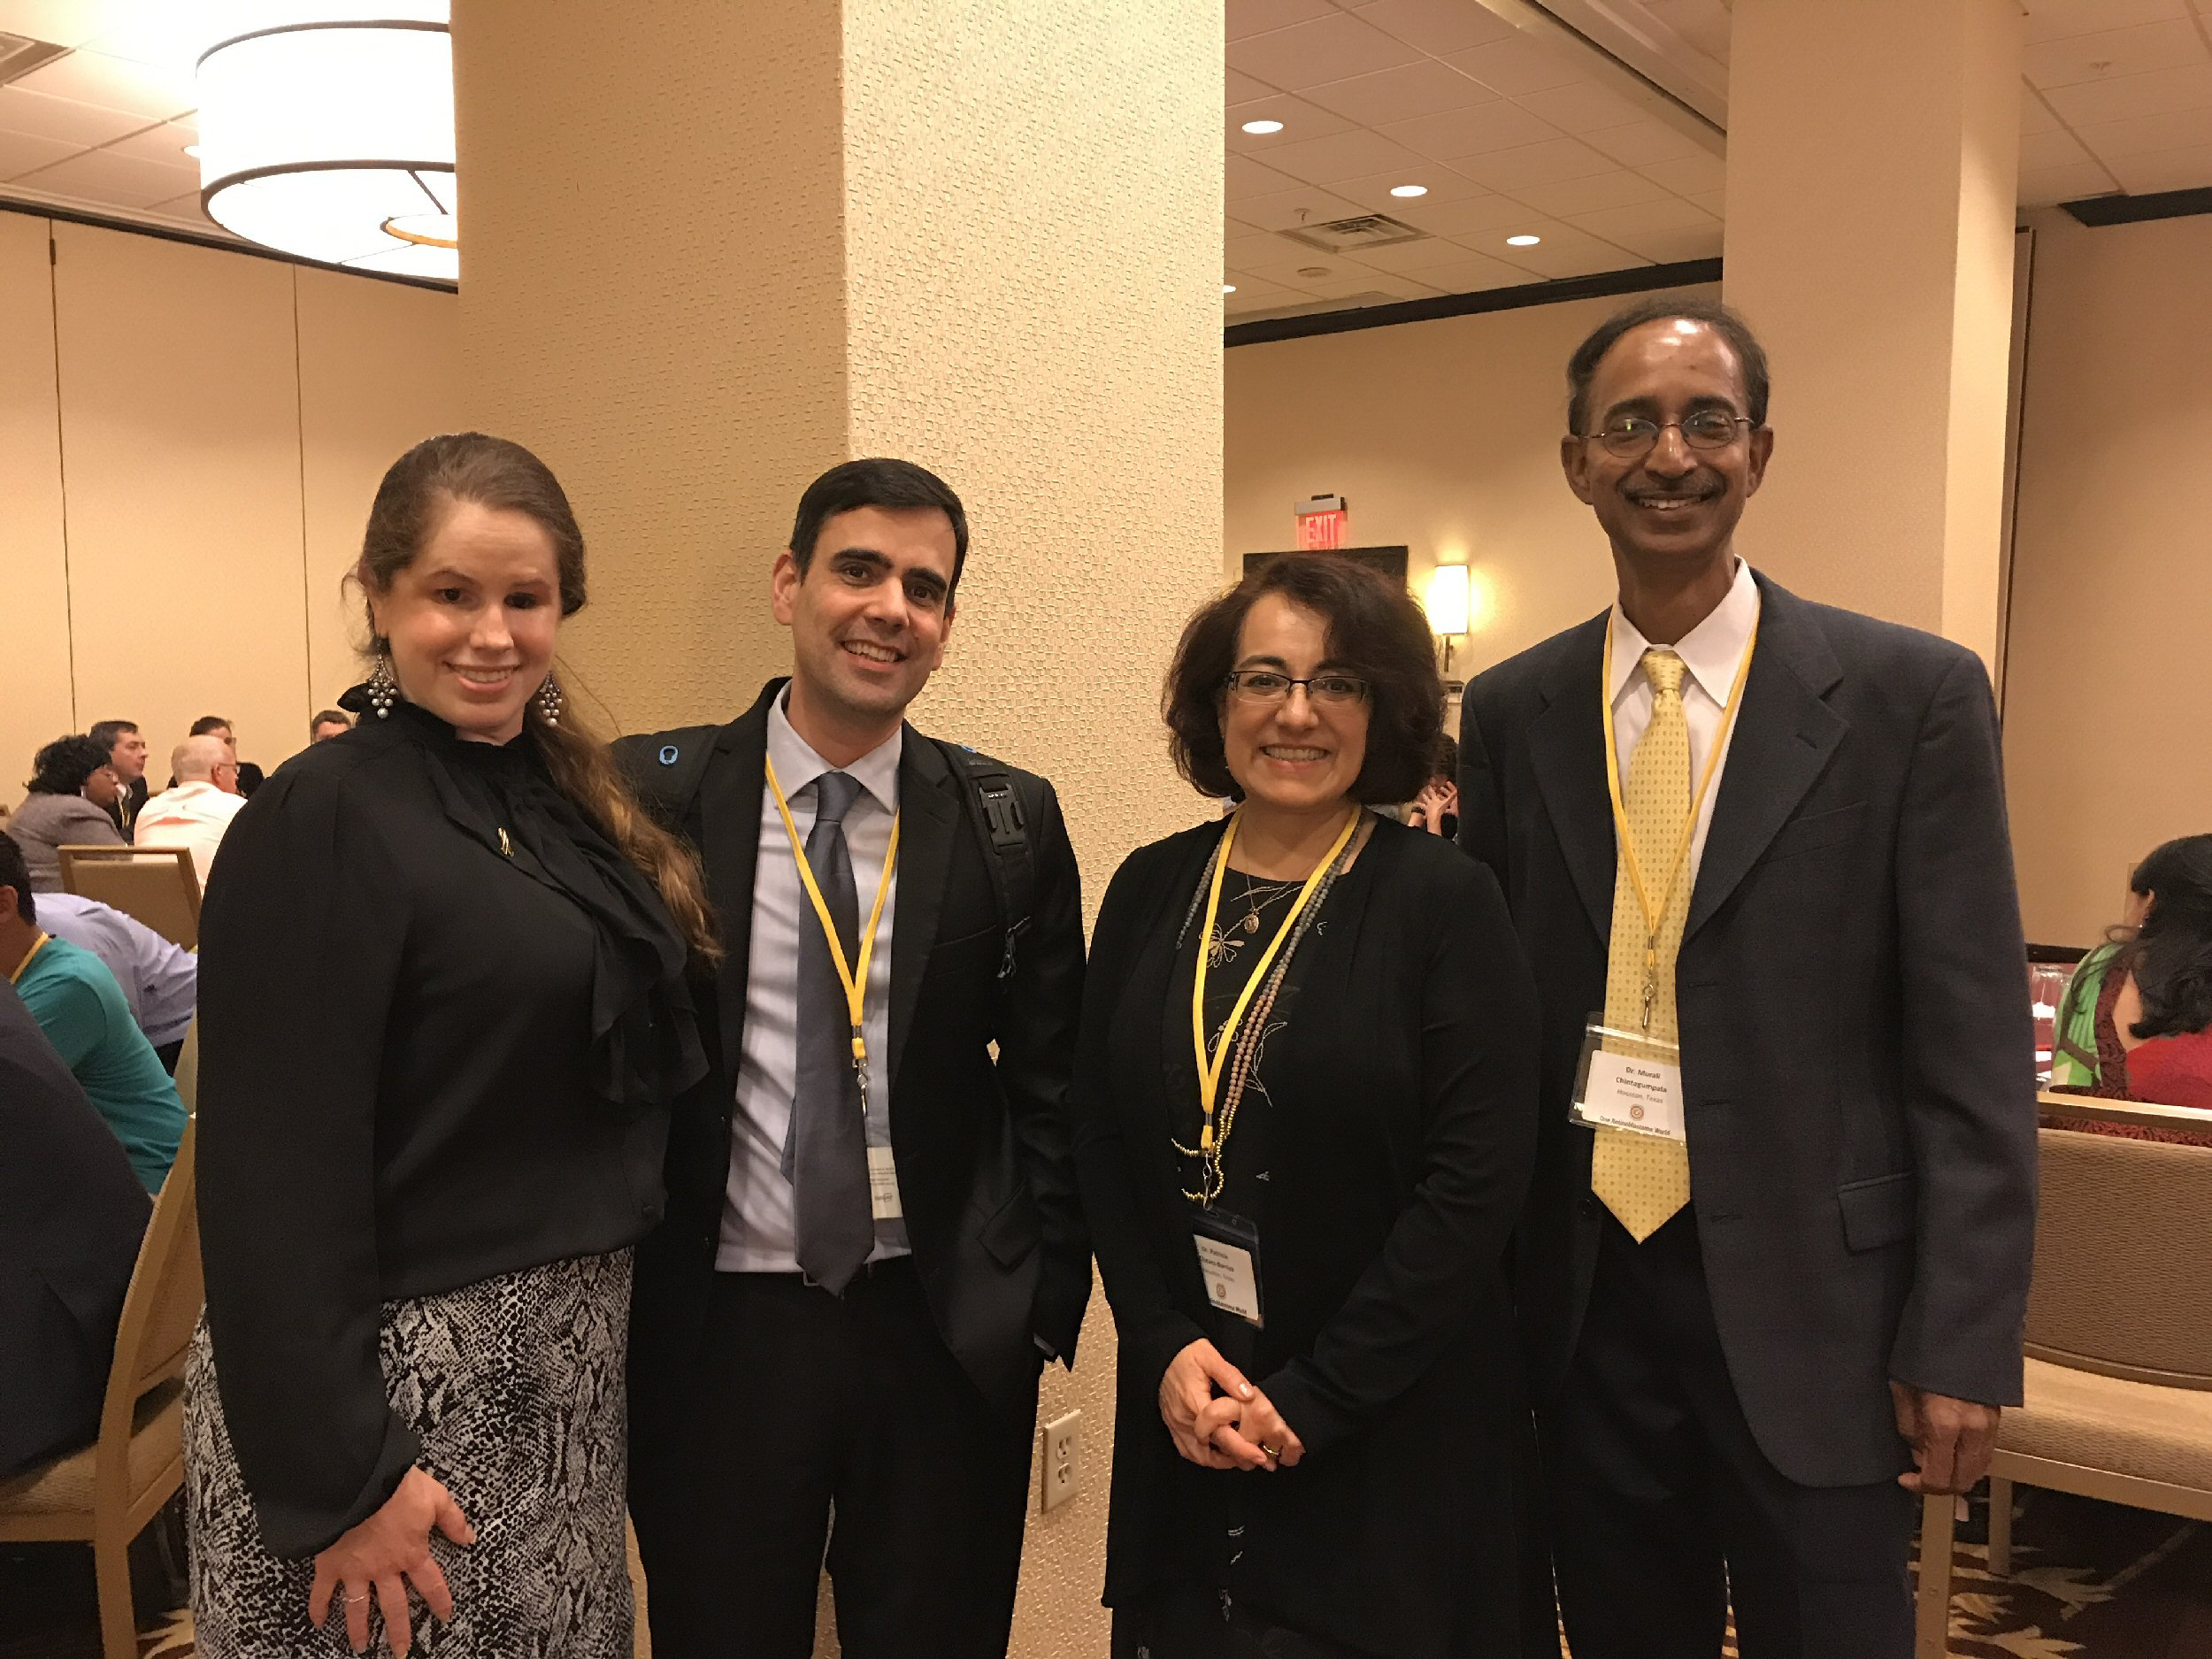 WE C Hope USA President, Marissa Gonzalez meets with Luiz Teixeira, Patty Chevez-Barrios and Murali Chintagumpala.